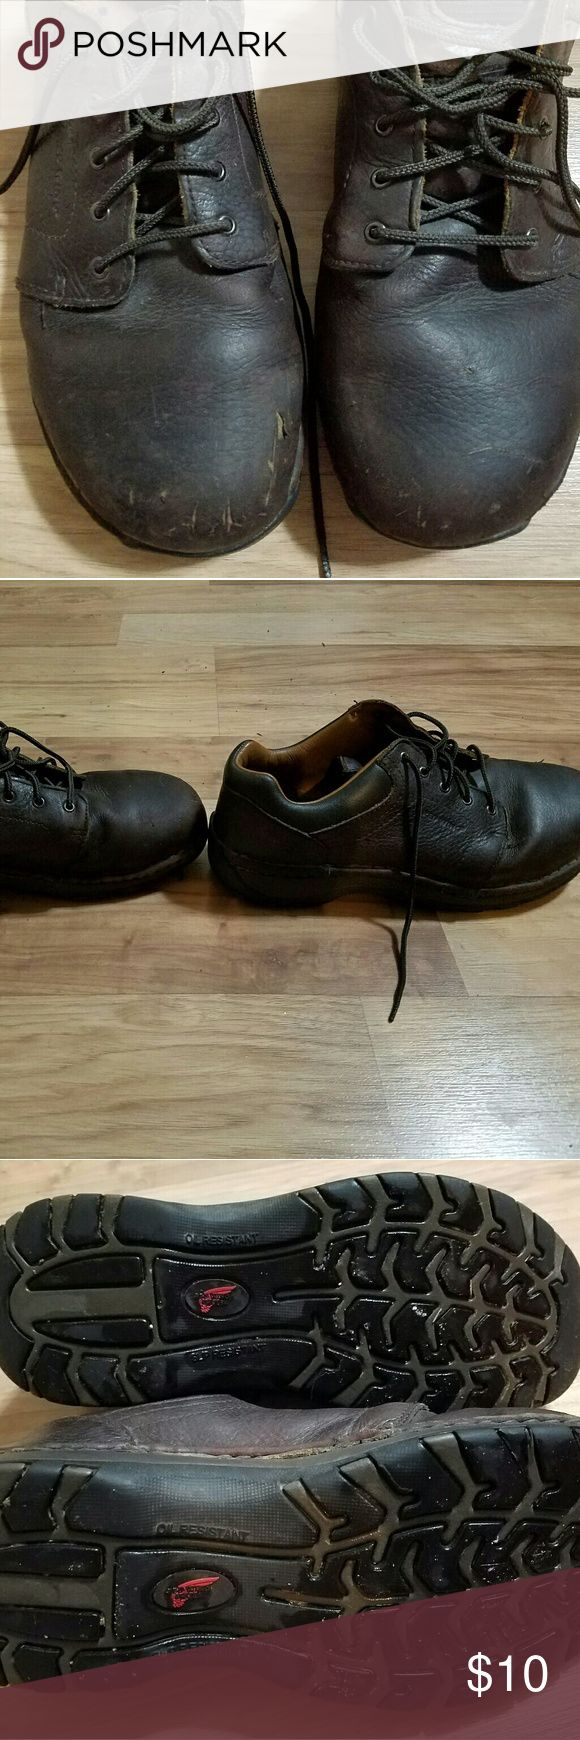 Steel toe work shoes Only have 6 months of wear but no longer working in a factory. Would like to get them to someone who needs steel toe and doesn't want to spend much for starting at a new factory job. No foot issues. I don't want to just throw them away. Red Wing Shoes Shoes